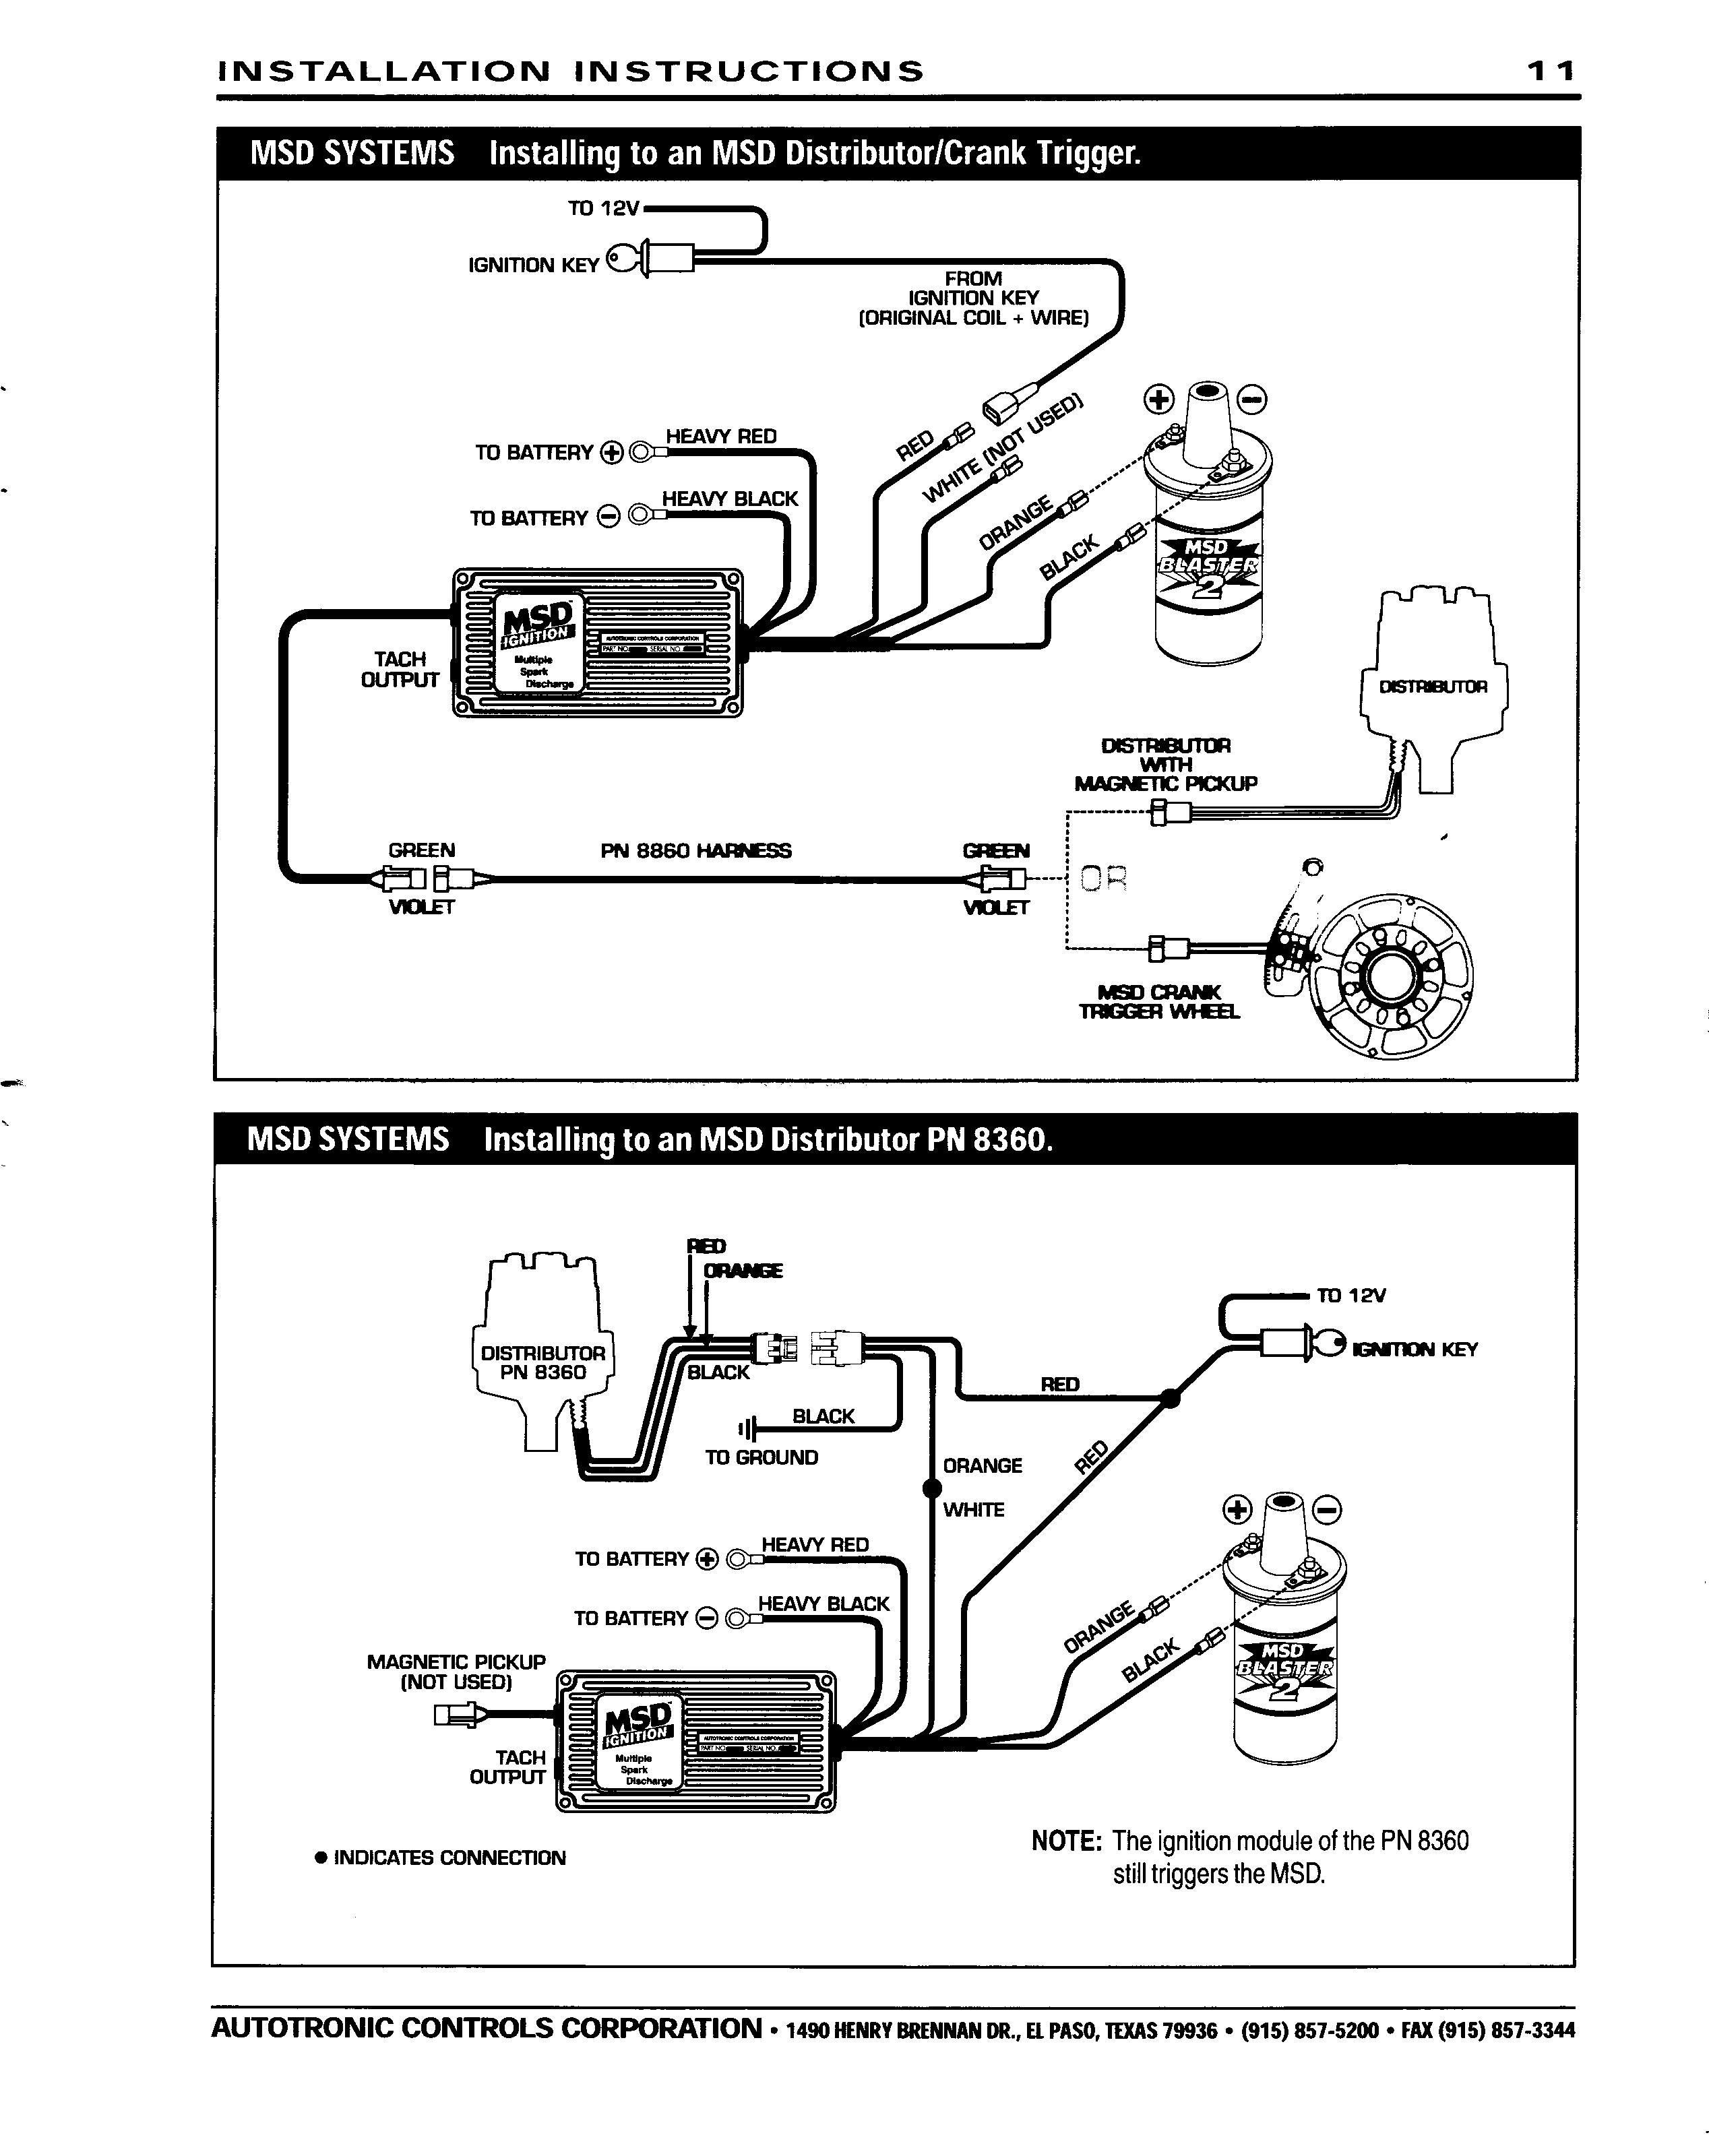 Taylor Dunn Wiring Diagram Volovets Info Ignition Coil Wire Ignite